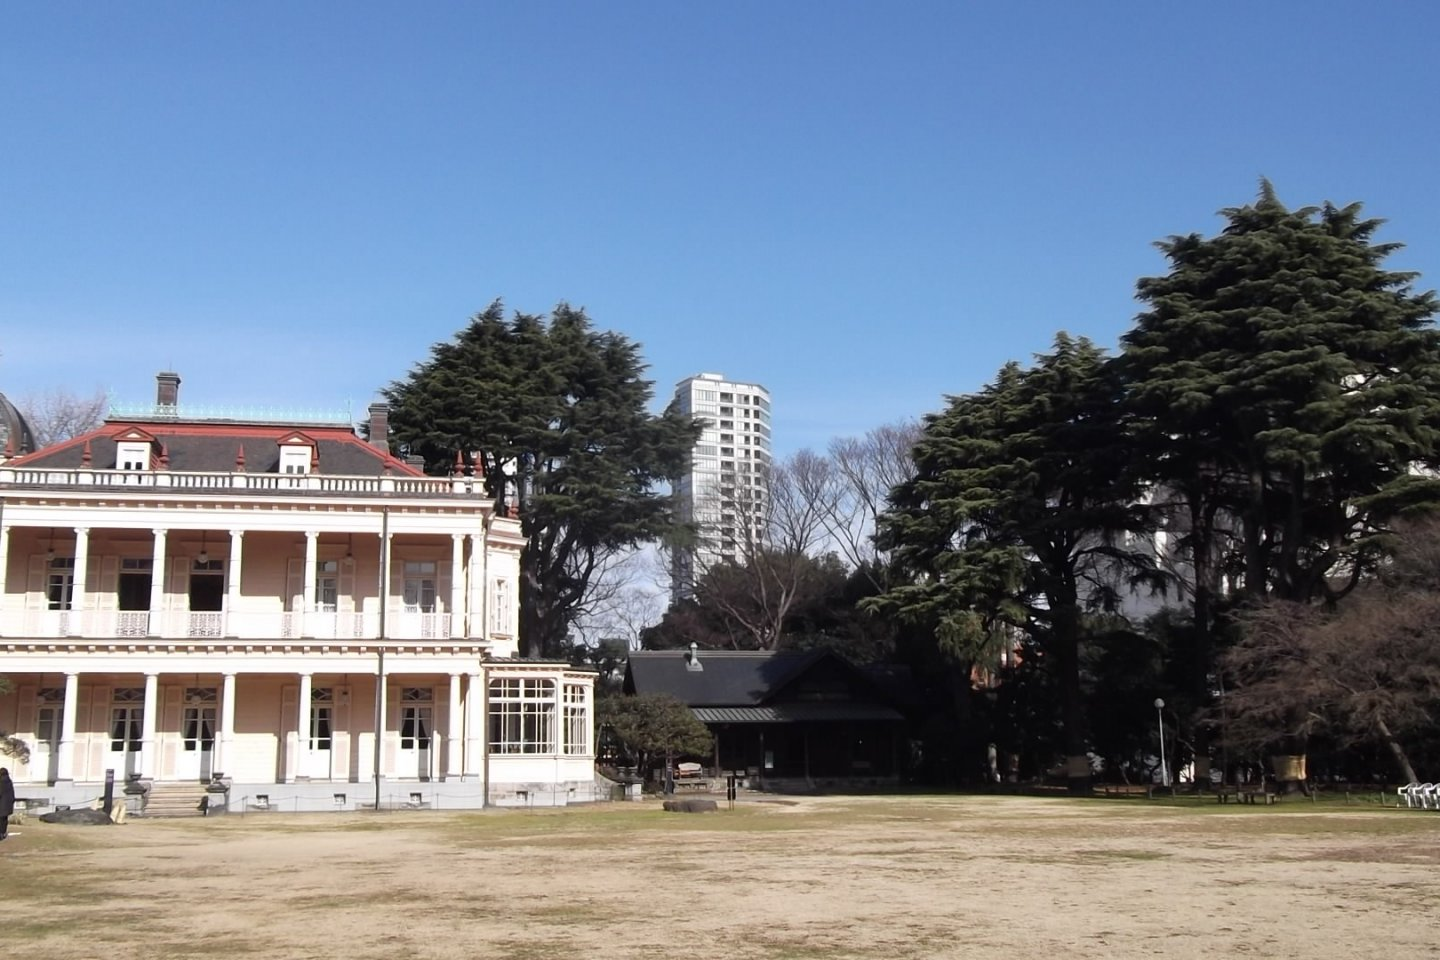 A view across the lawn